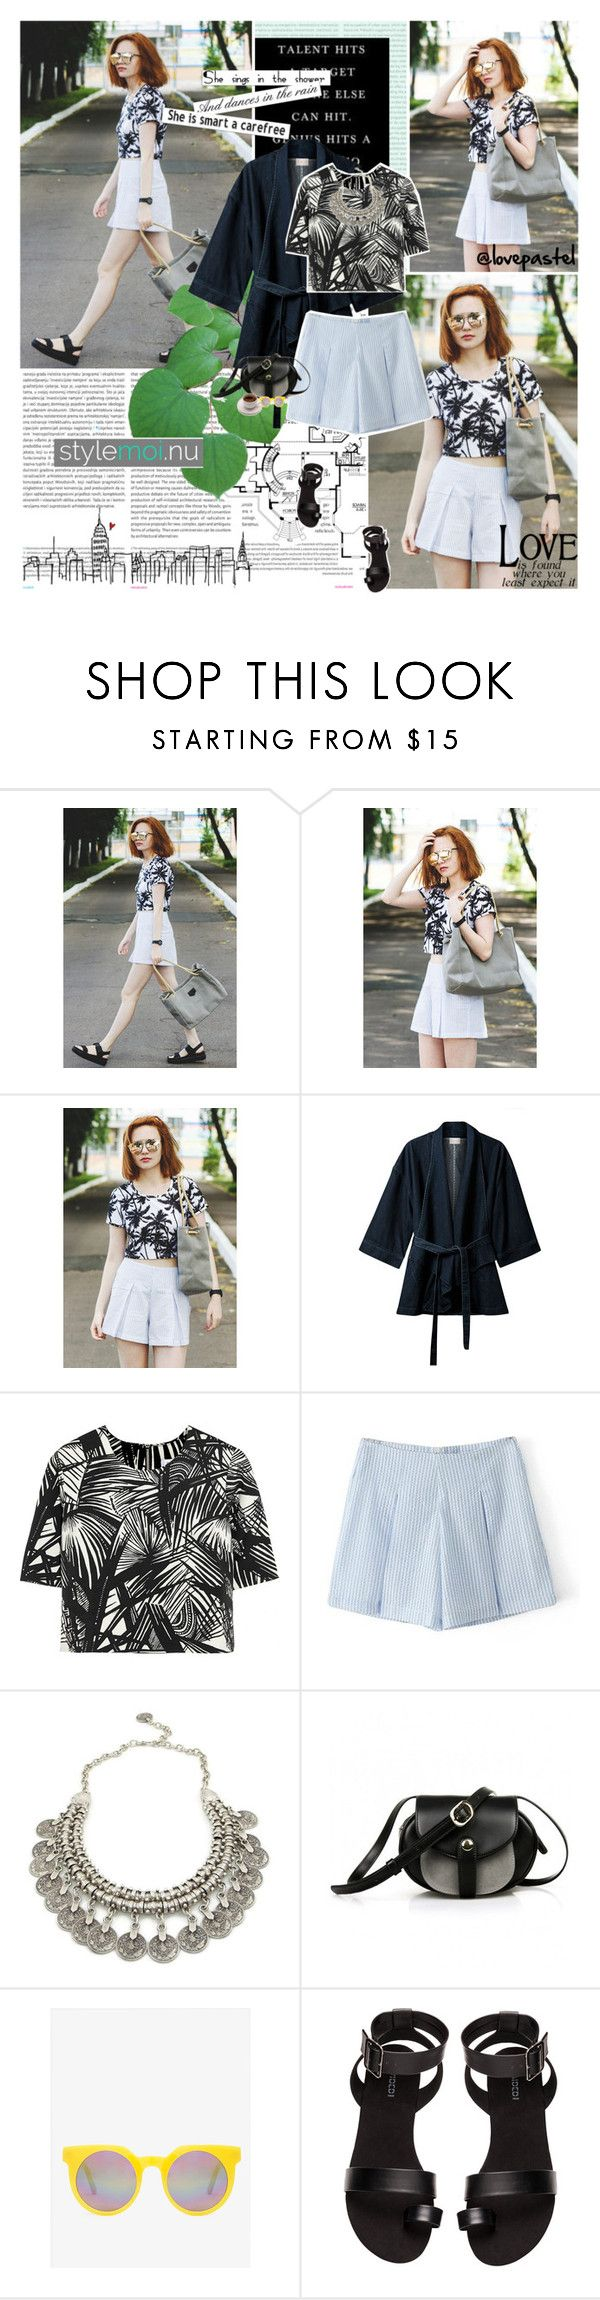 """""""No 204:Street Style (STYLEMOI CELEBRATING 1-ST YEAR ANNIVERSARY SIGN UP) (Stylemoi.nu) (@lovepastel)"""" by lovepastel ❤ liked on Polyvore featuring Oris, EAST, Elizabeth and James, Quay, H&M and stylemoi"""